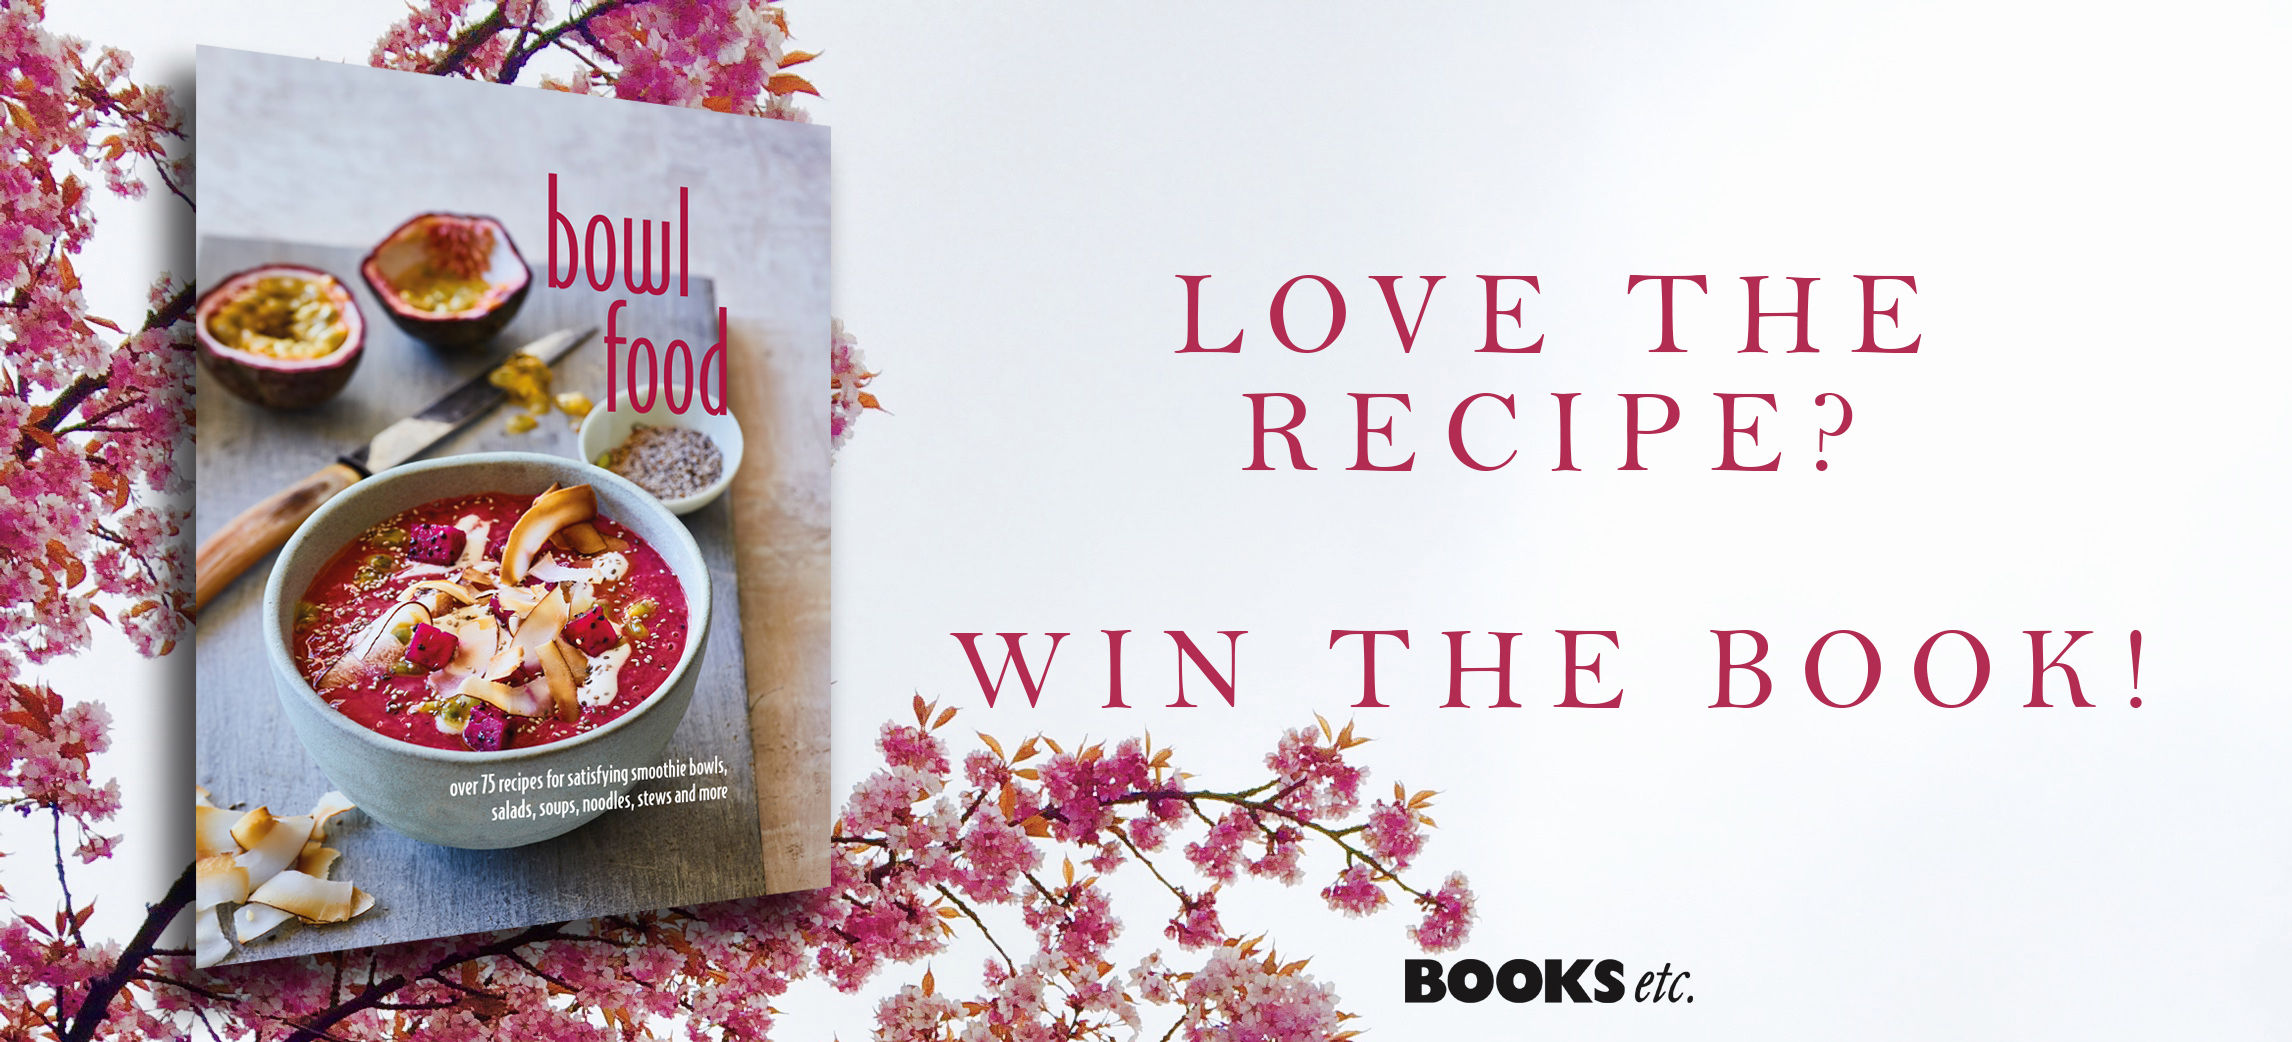 Win a copy of bowl food books etc blog this month weve chosen a delicious recipe thats easy to make and full of fresh wholesome ingredients sesame coated tofu with adzuki beans forumfinder Choice Image